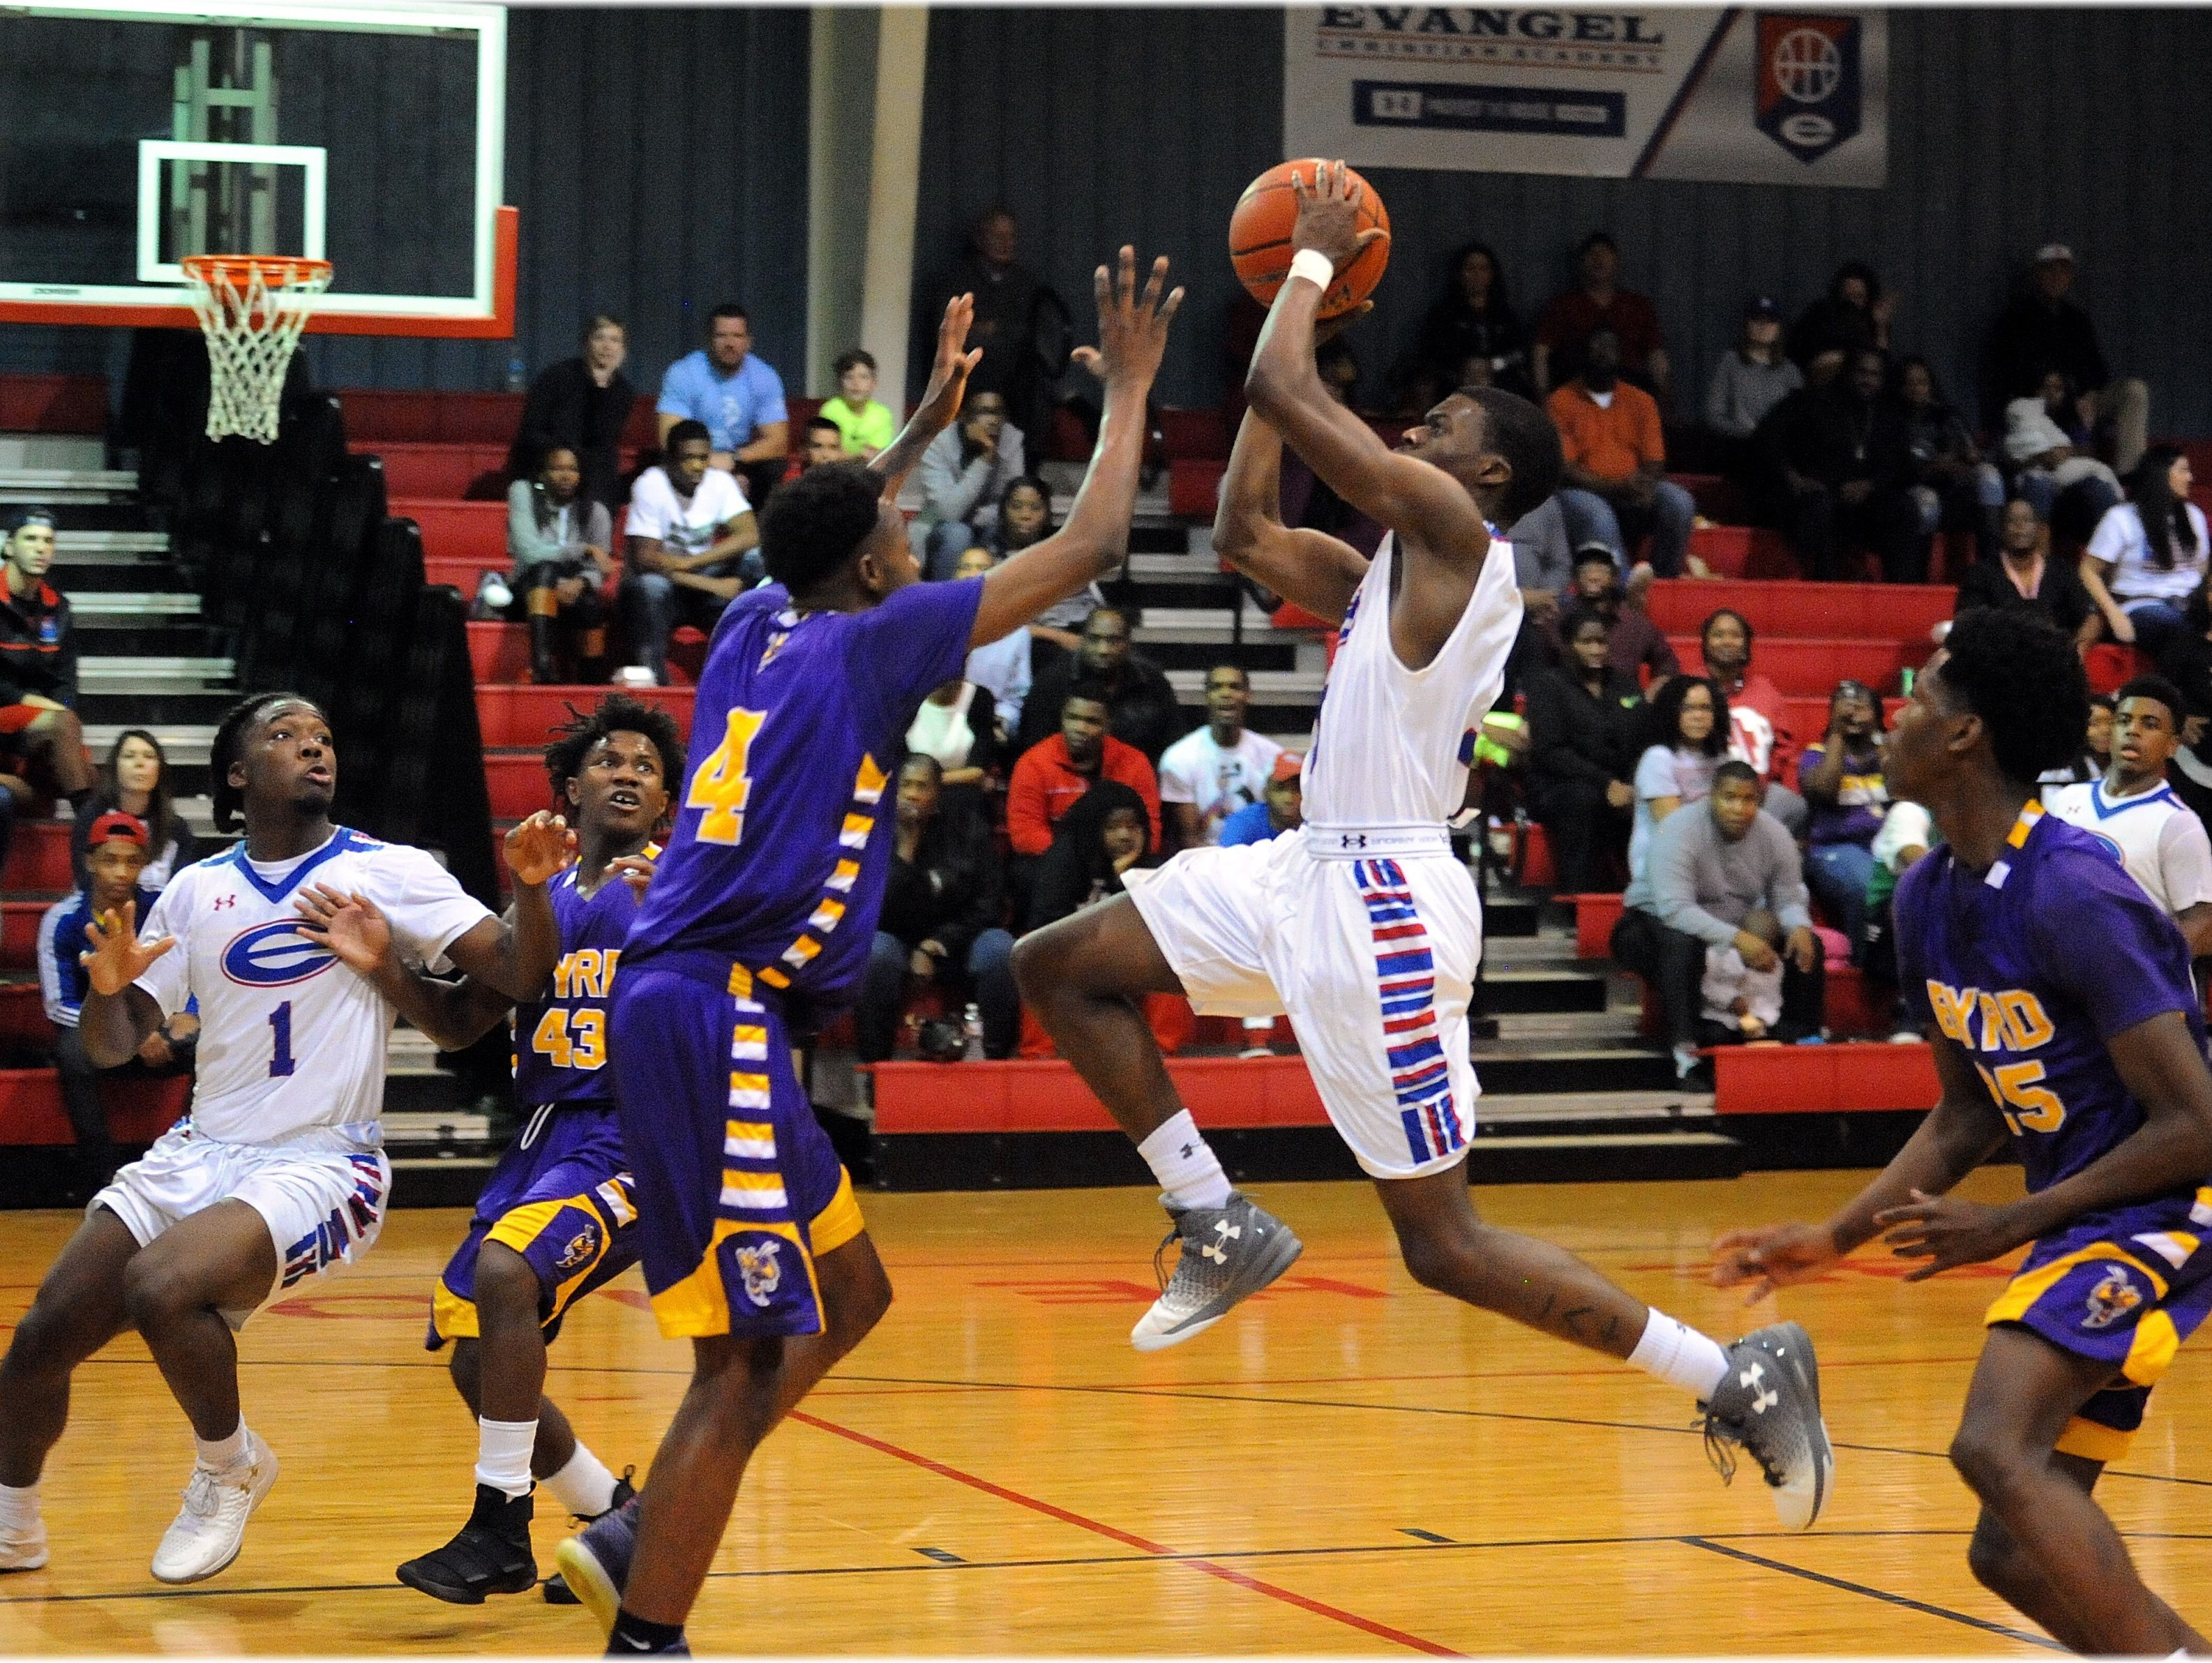 Byrd and Evangel, pictured here in a game earlier this season, will meet Tueday in the Division I playoffs.